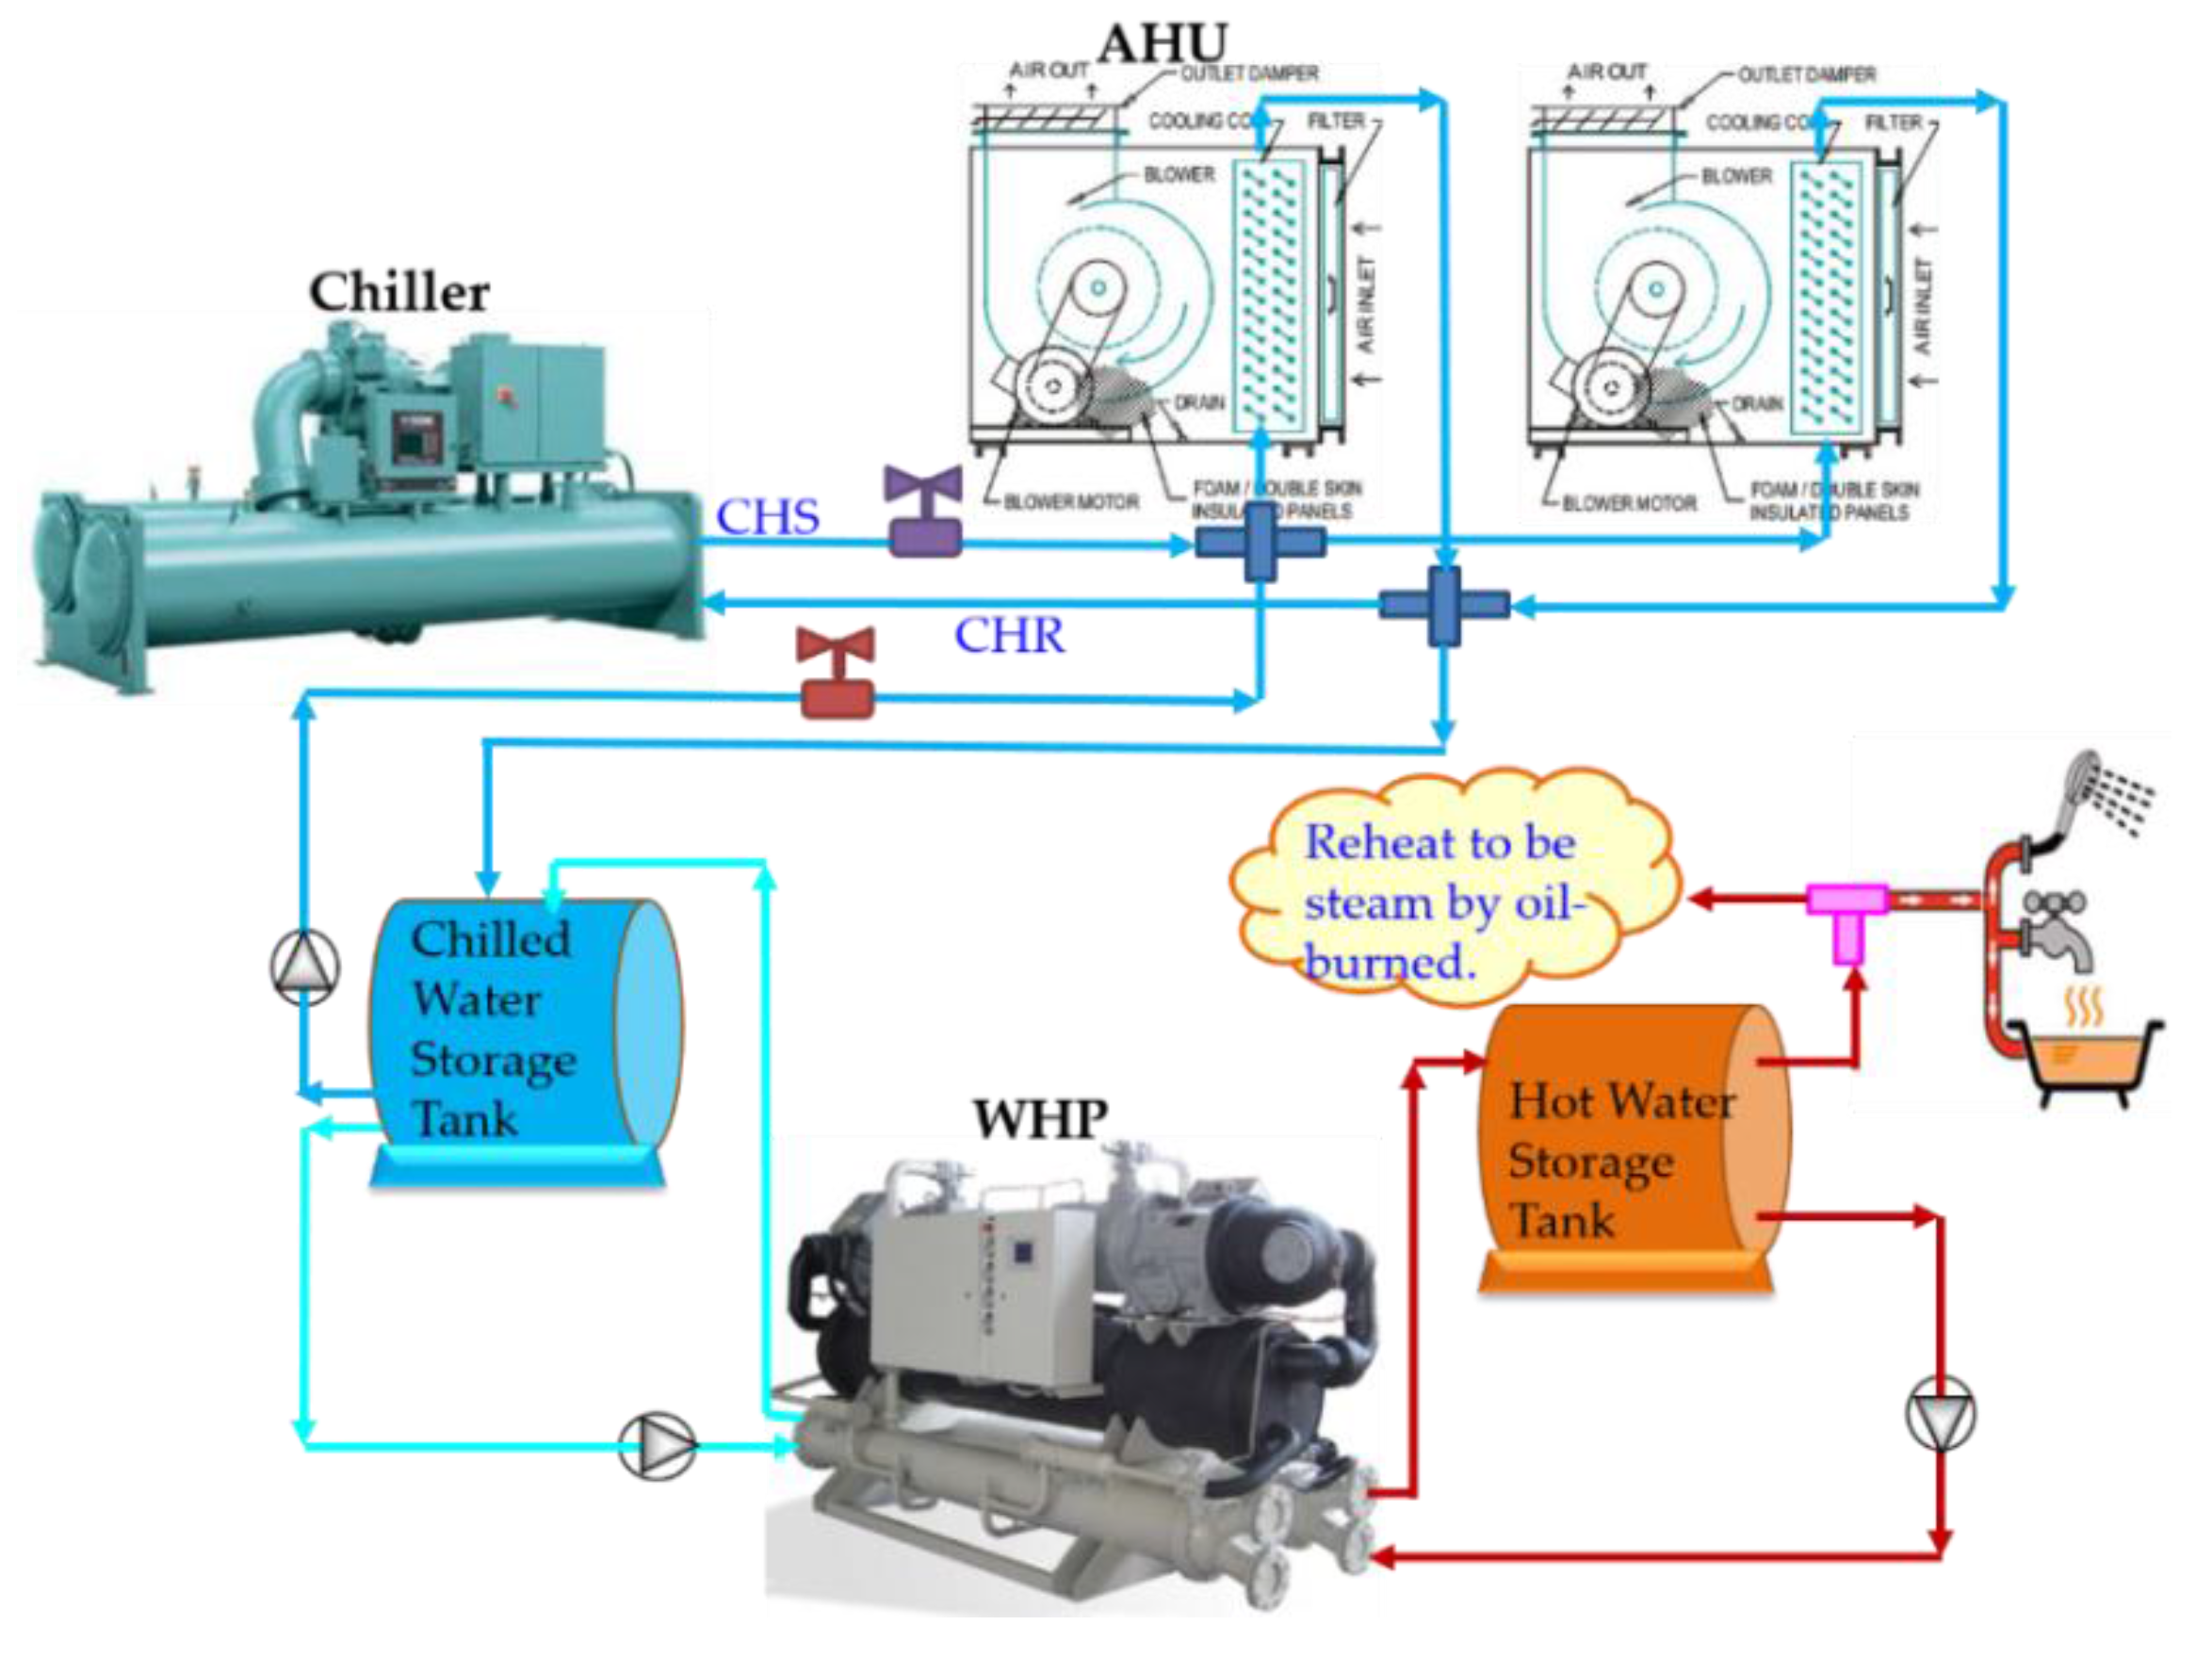 Sustainability Free Full Text Performance Analysis Of An Integrated Heat Pump With Air Conditioning System For The Existing Hospital Building Application Html